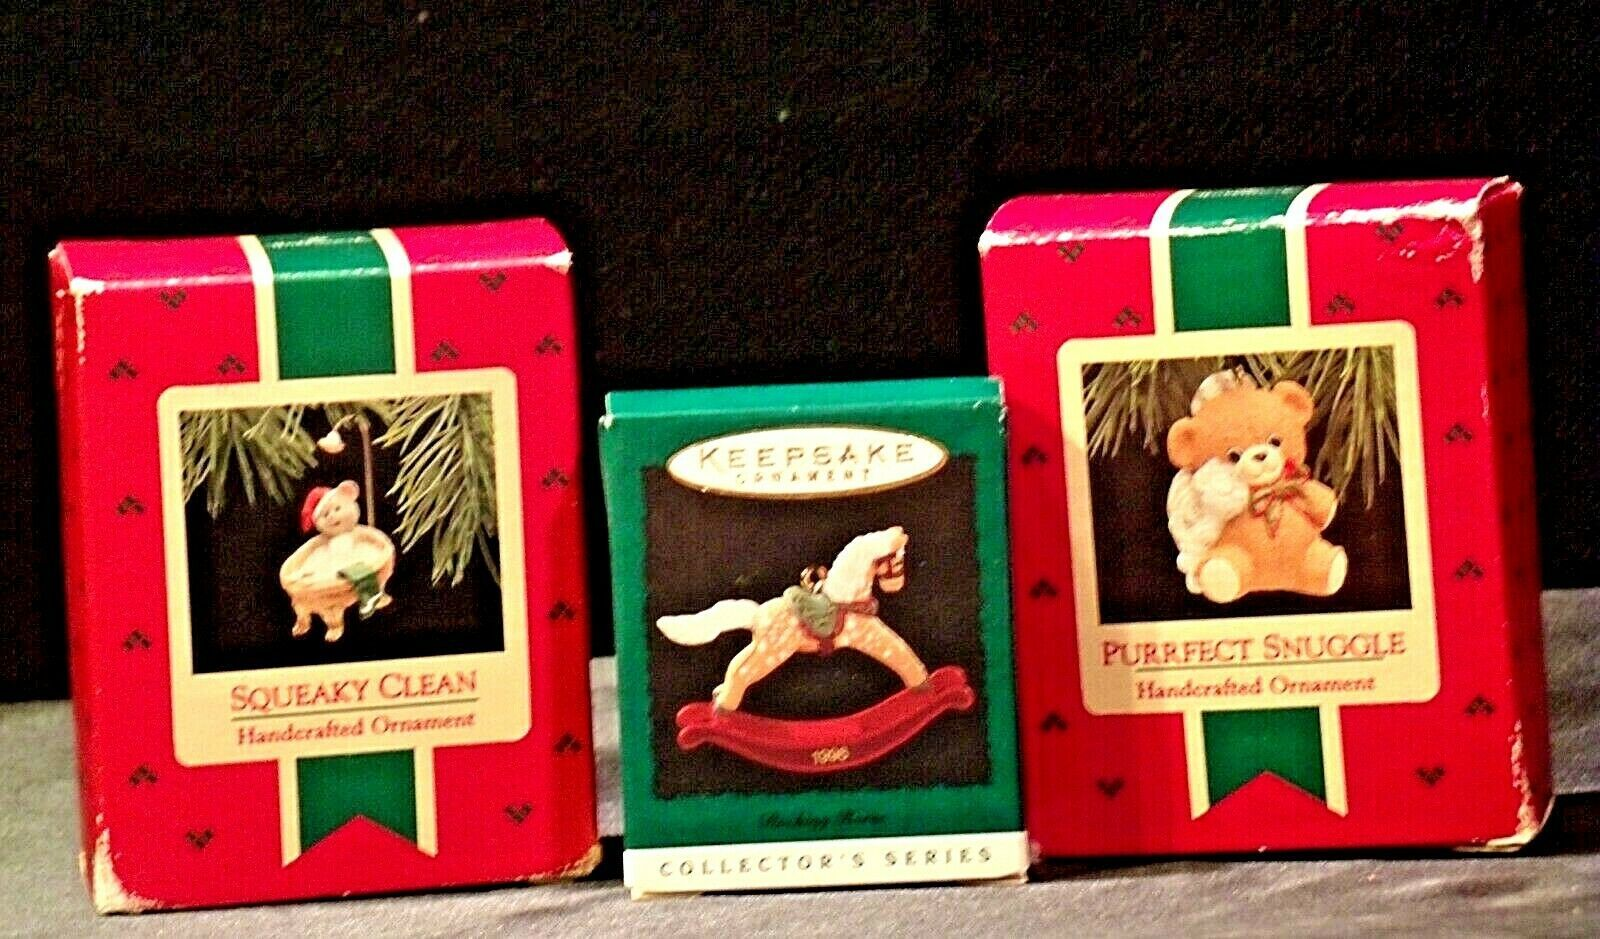 Hallmark Handcrafted Ornaments AA-191769 Collectible ( 3 pieces )